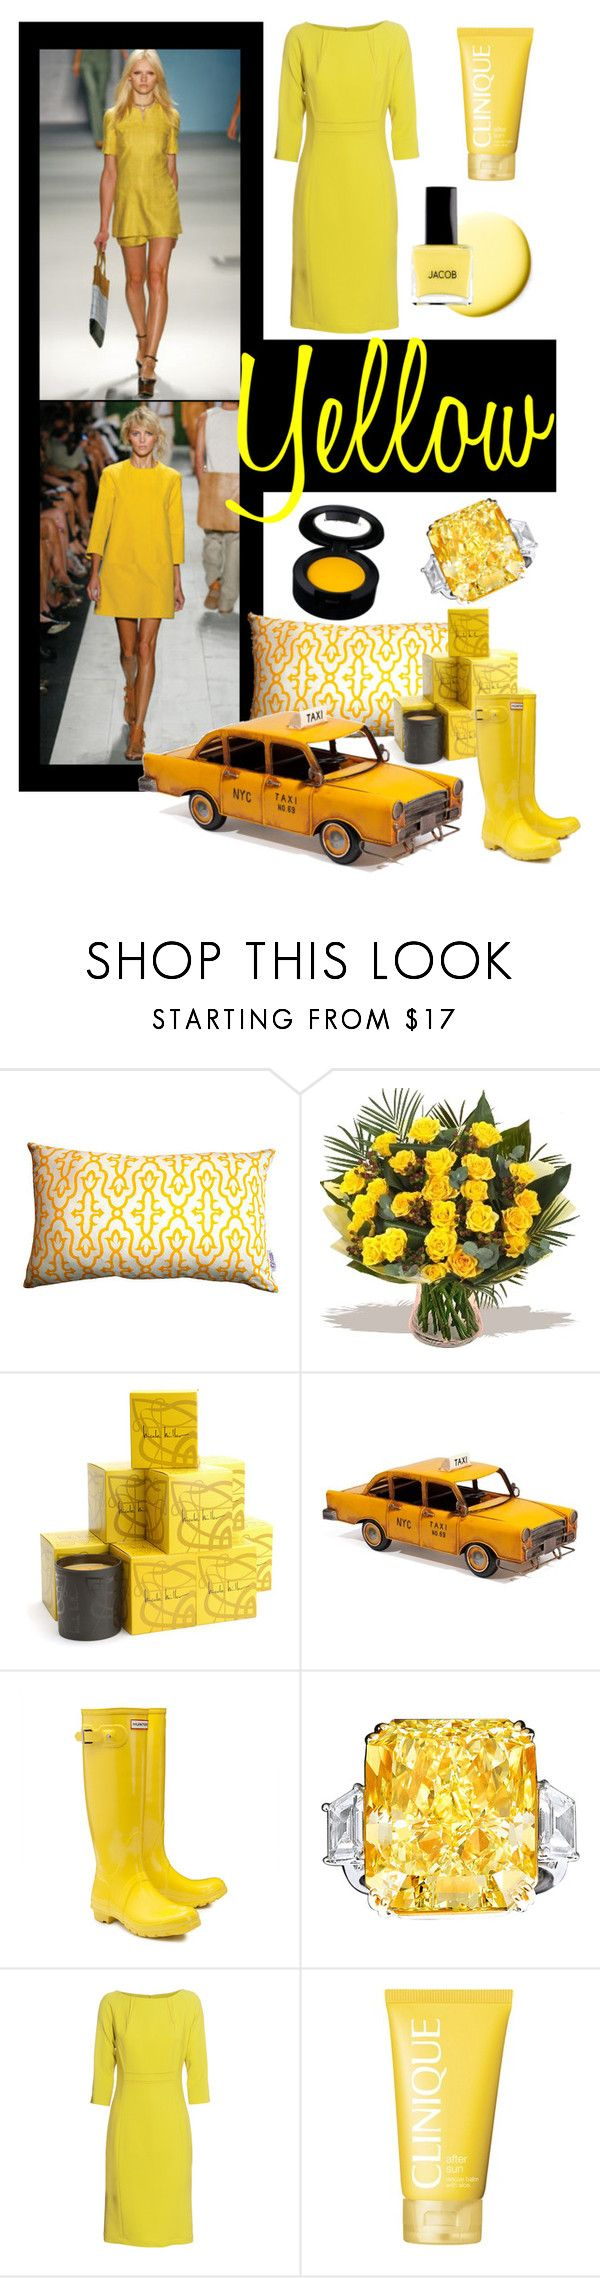 """""""YELLOW"""" by linefreh ❤ liked on Polyvore featuring Nicole Miller, TAXI, Hunter, THOMAS RATH, Clinique, women's clothing, women's fashion, women, female and woman"""